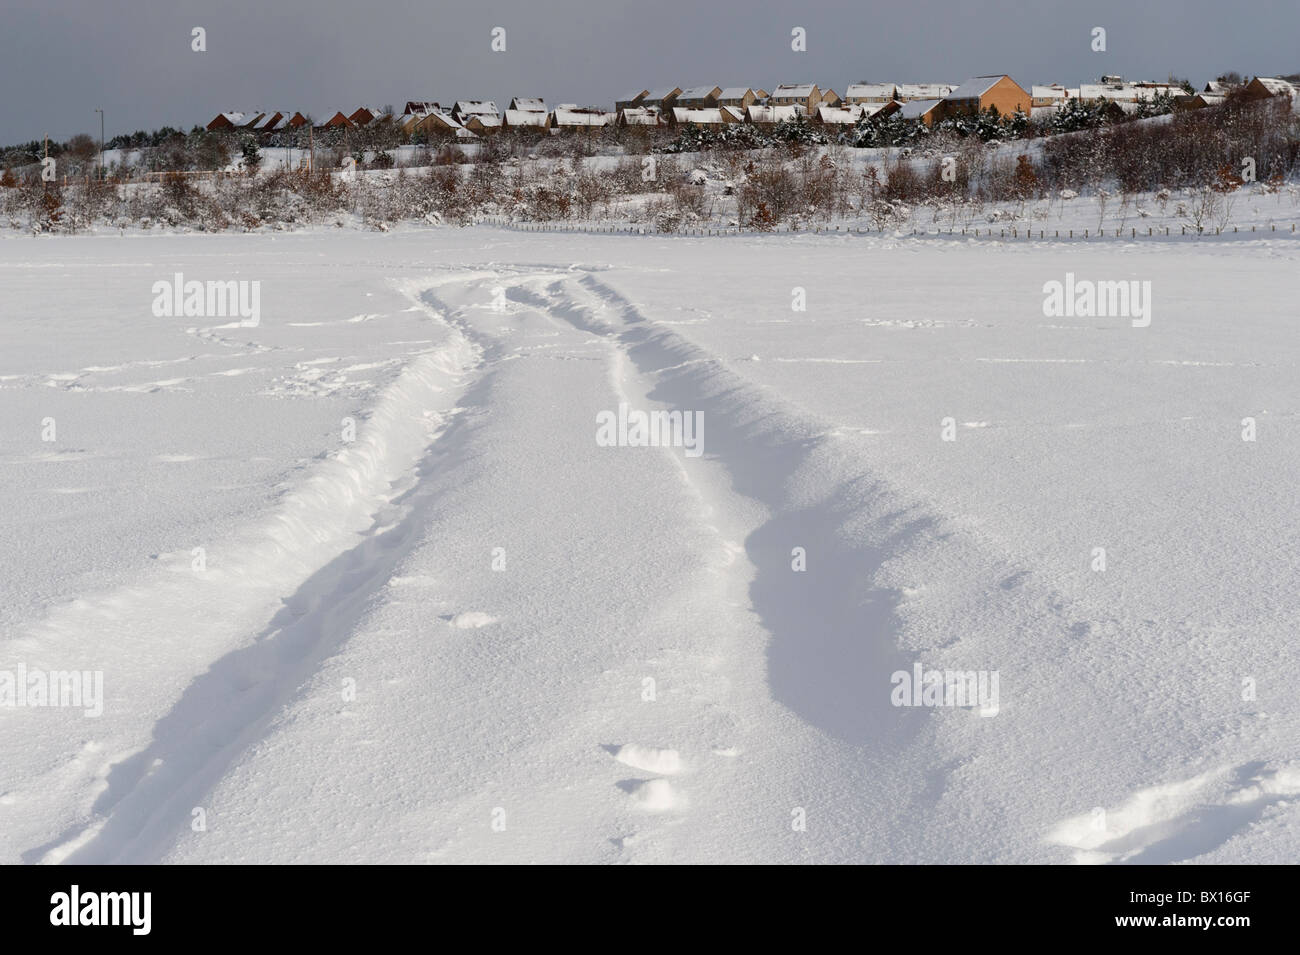 Tracks across a snow covered field. - Stock Image